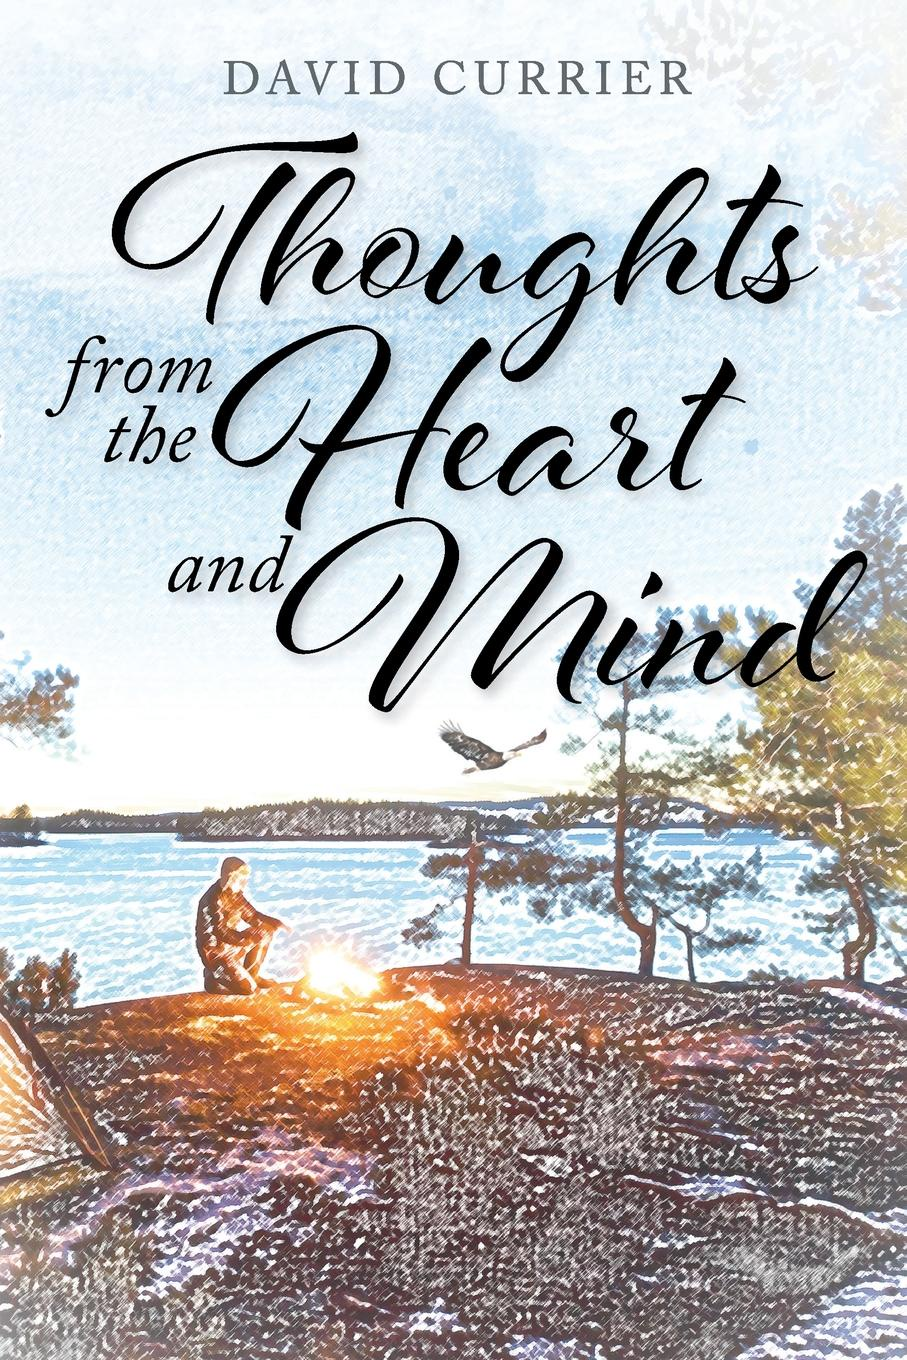 David Currier Thoughts from the Heart and Mind